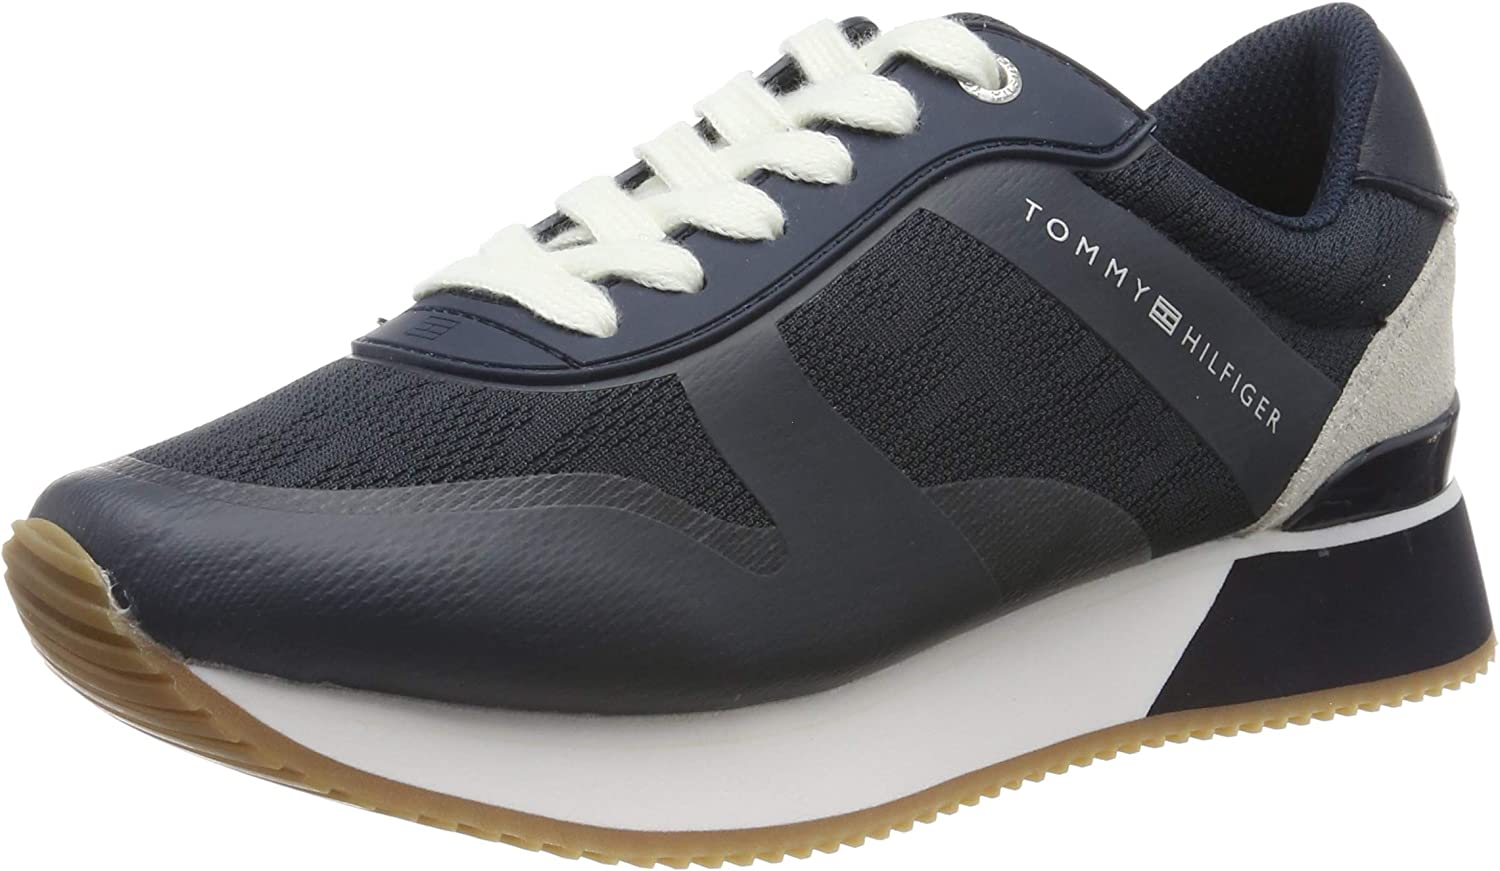 Tommy Hilfiger Tommy Jacquard City Sneaker, Zapatillas para Mujer